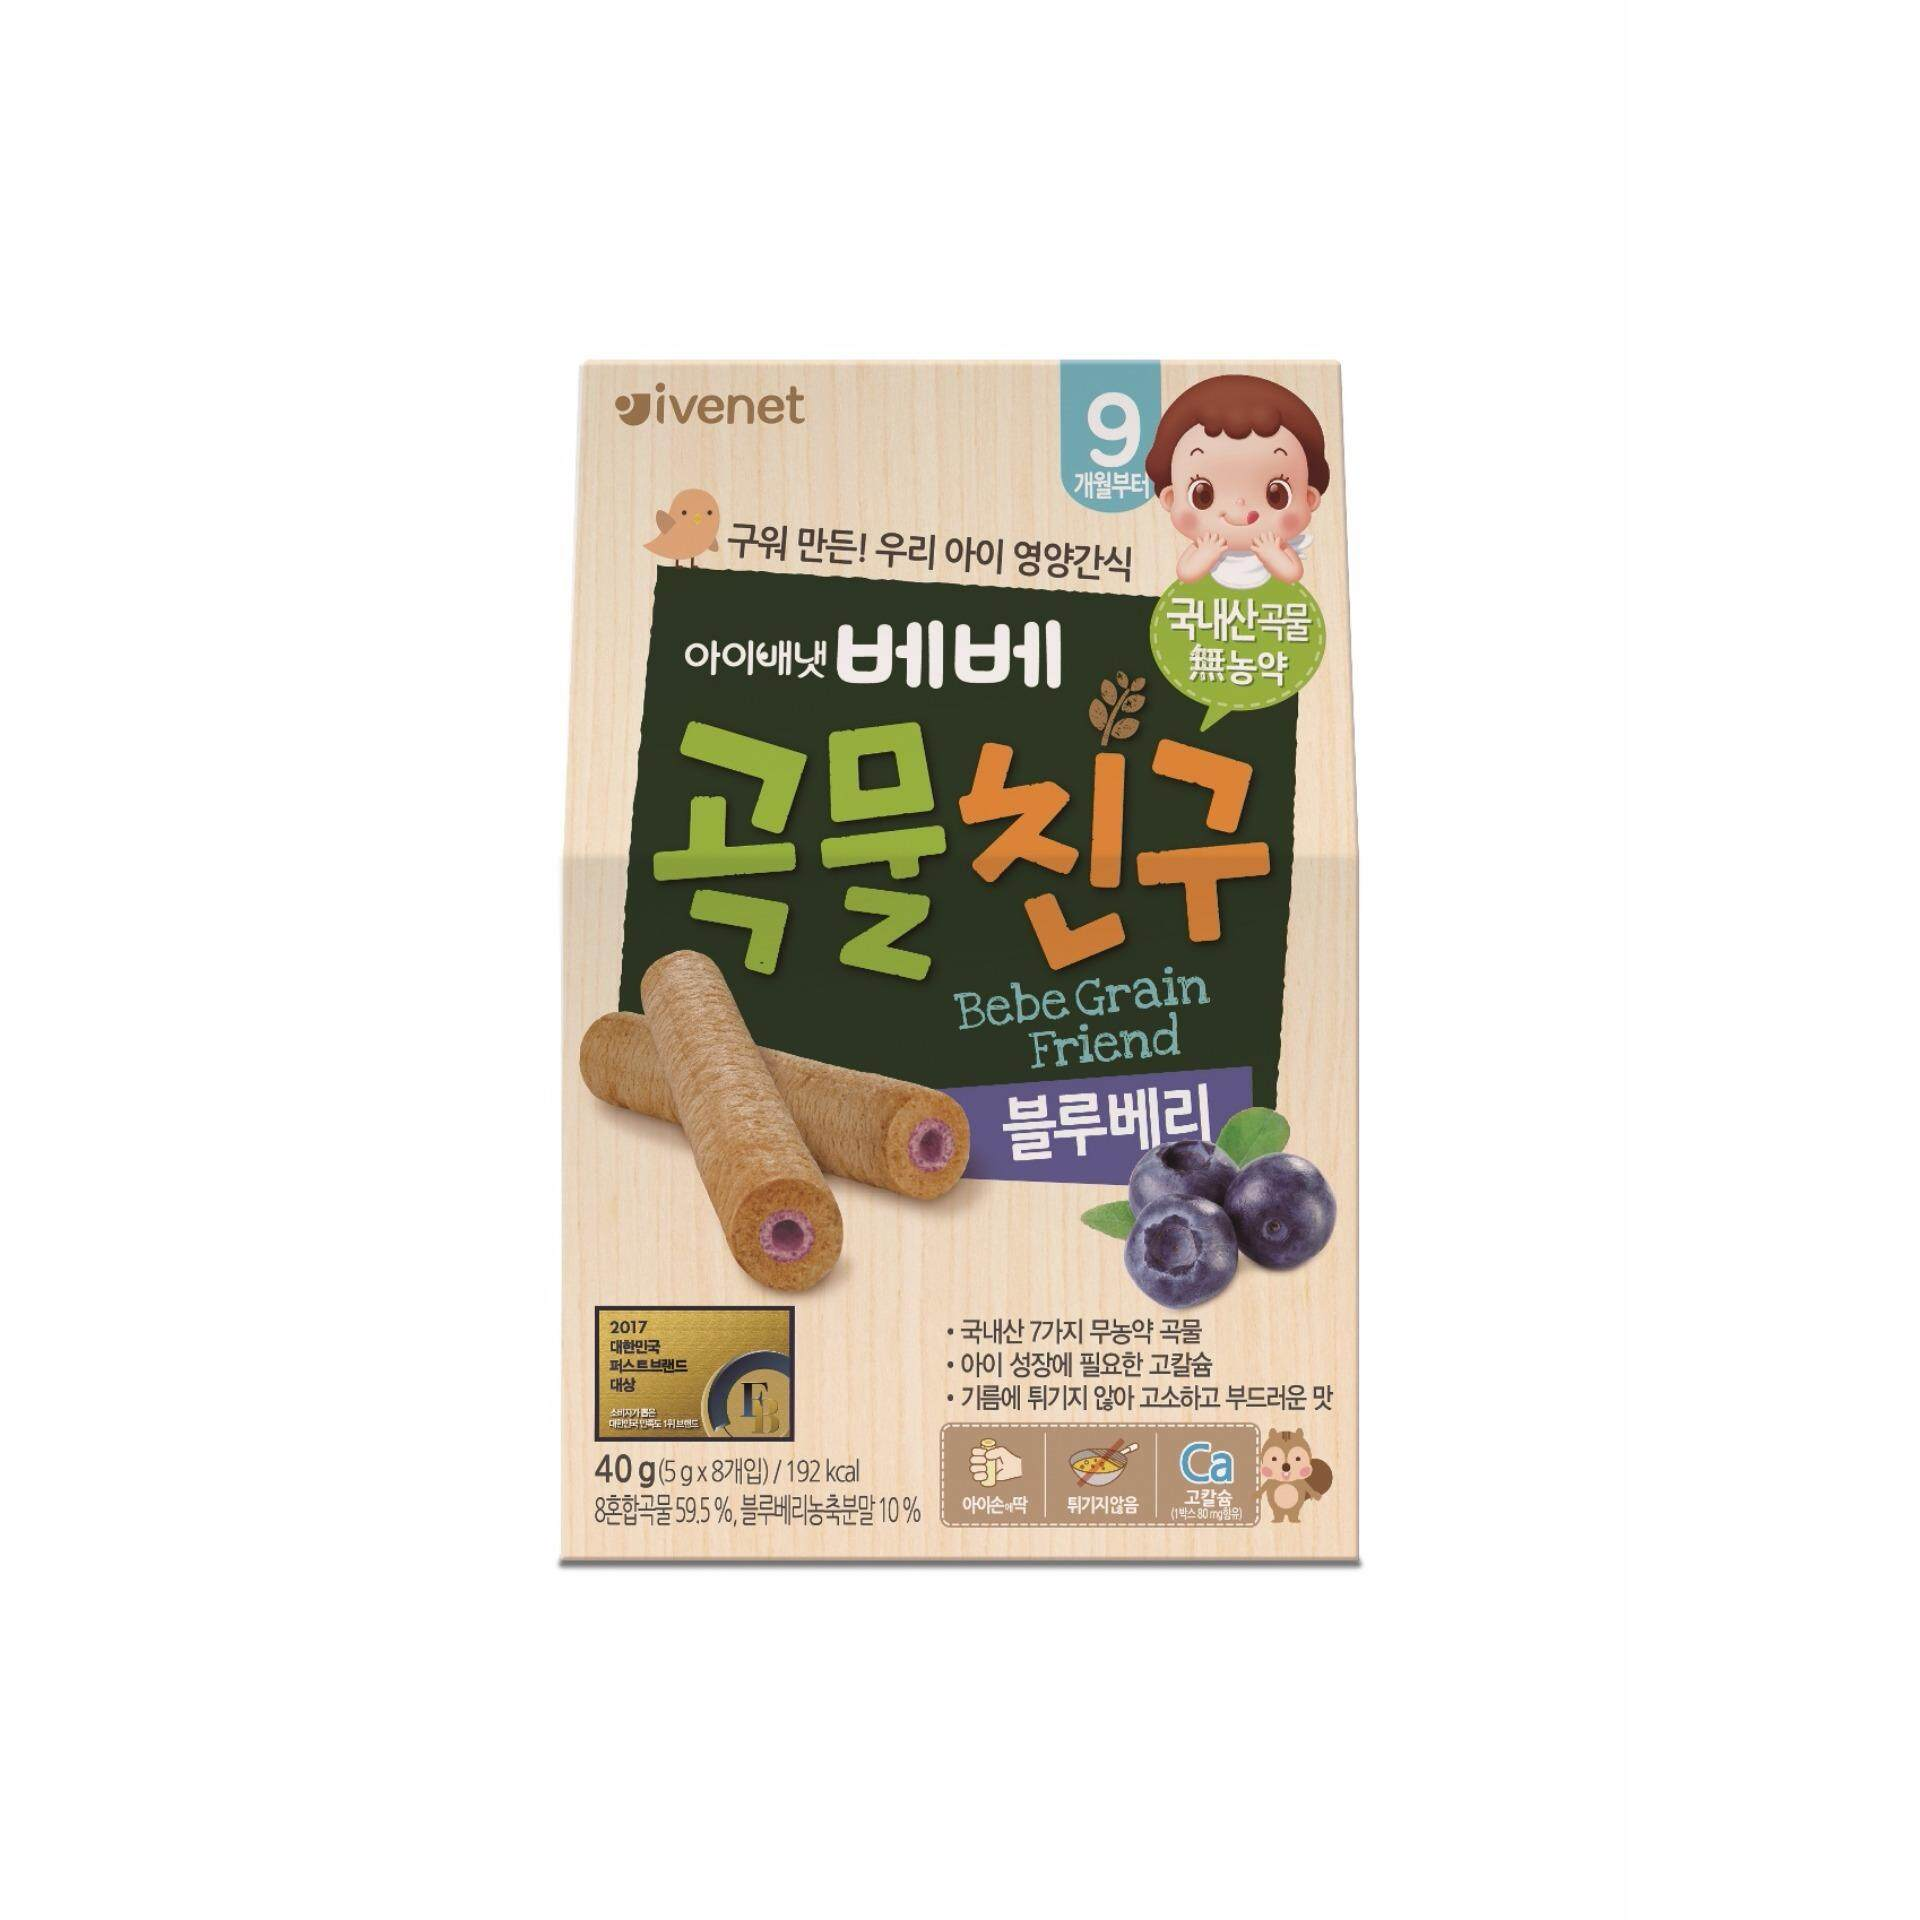 Ivenet Bebe Grain Friend 40g (Blueberry)